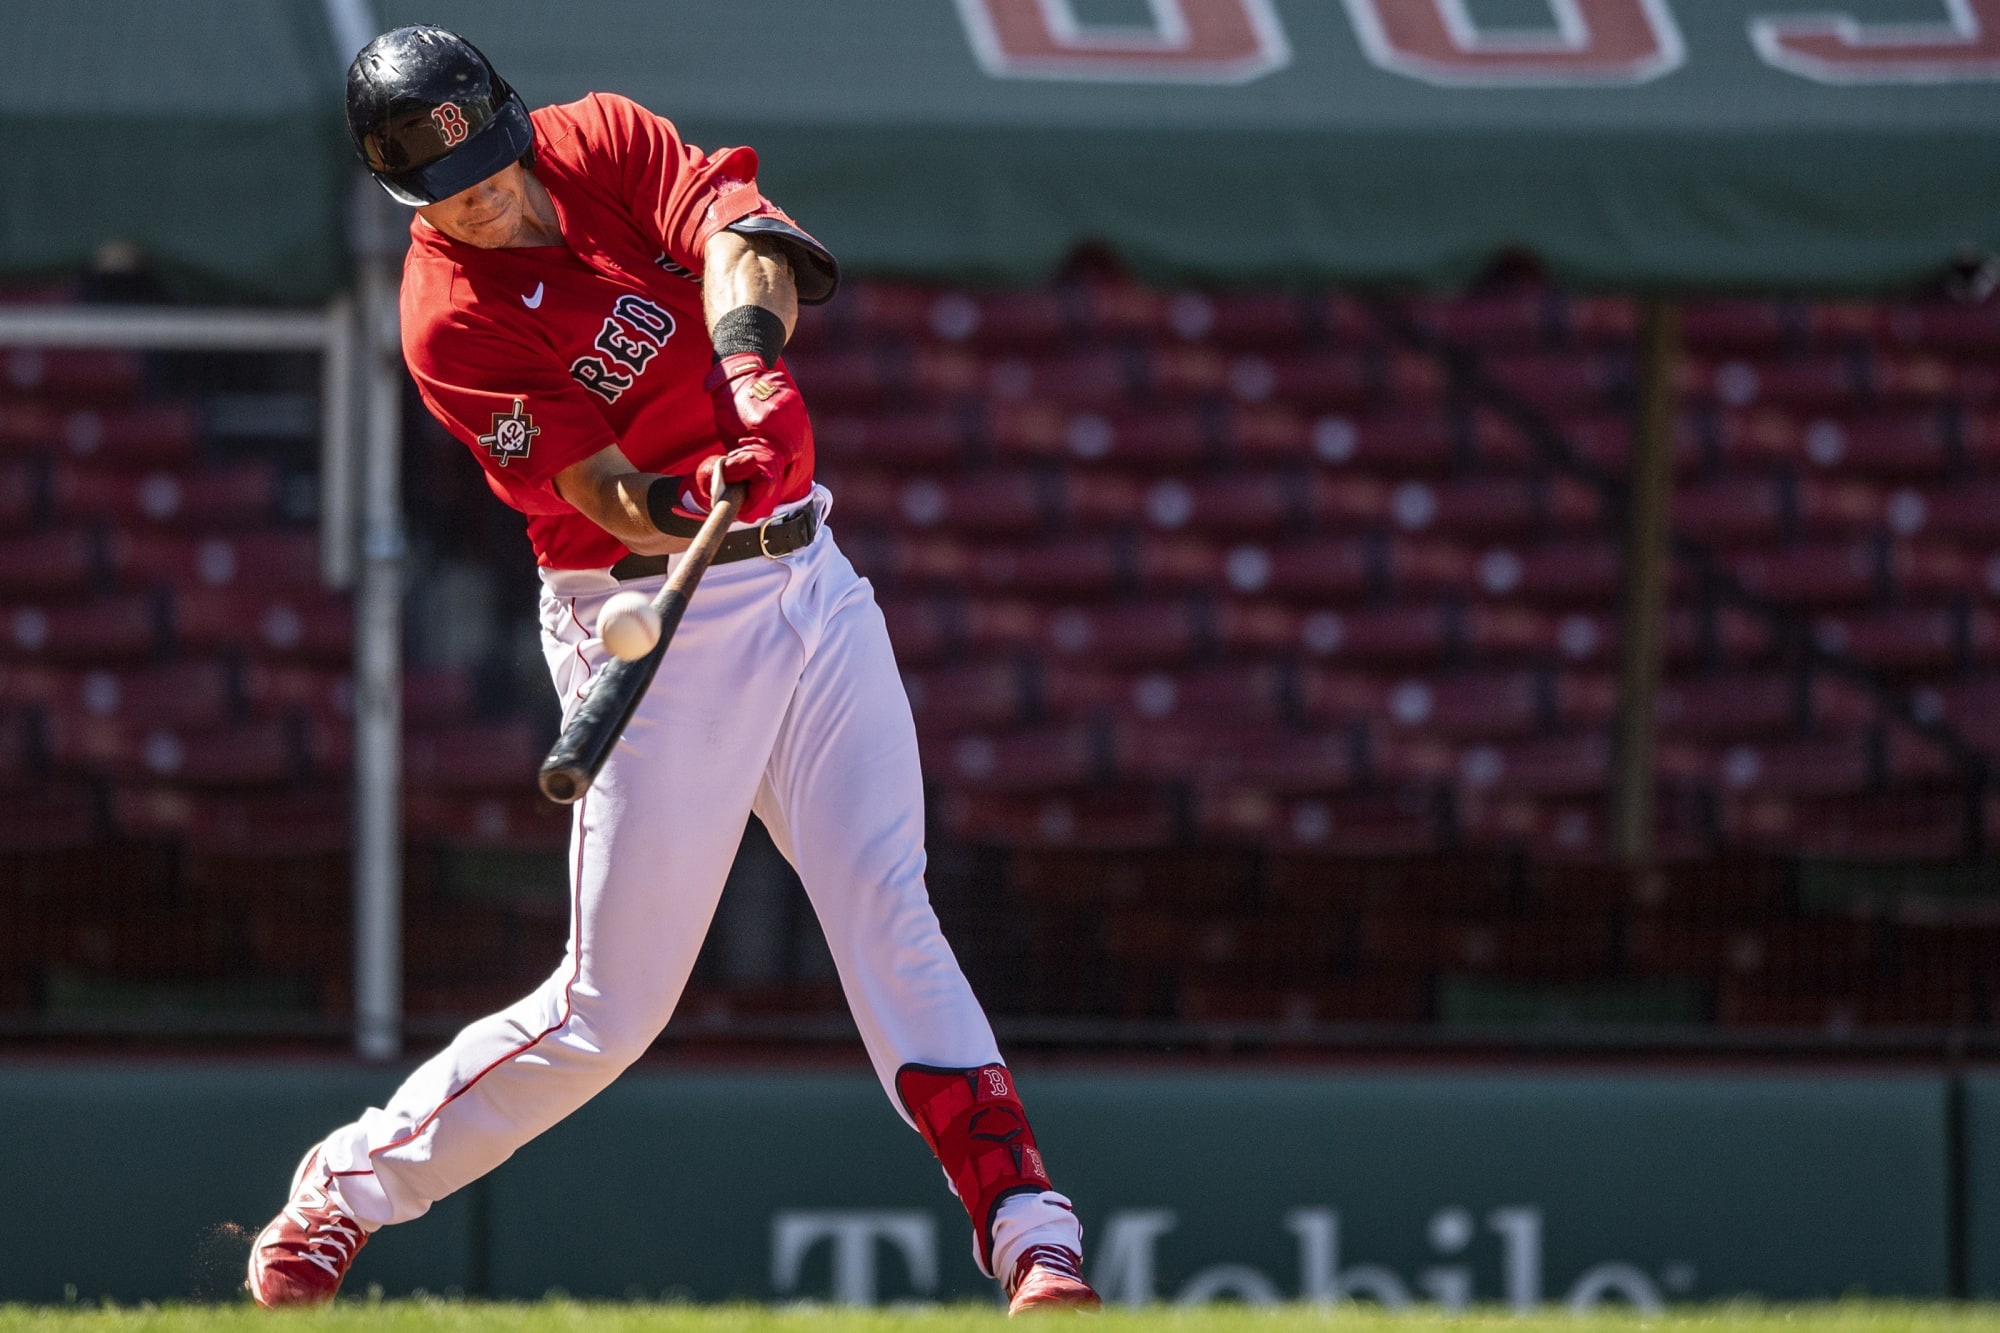 Red Sox: Selective look at offense and pitching on Statcast